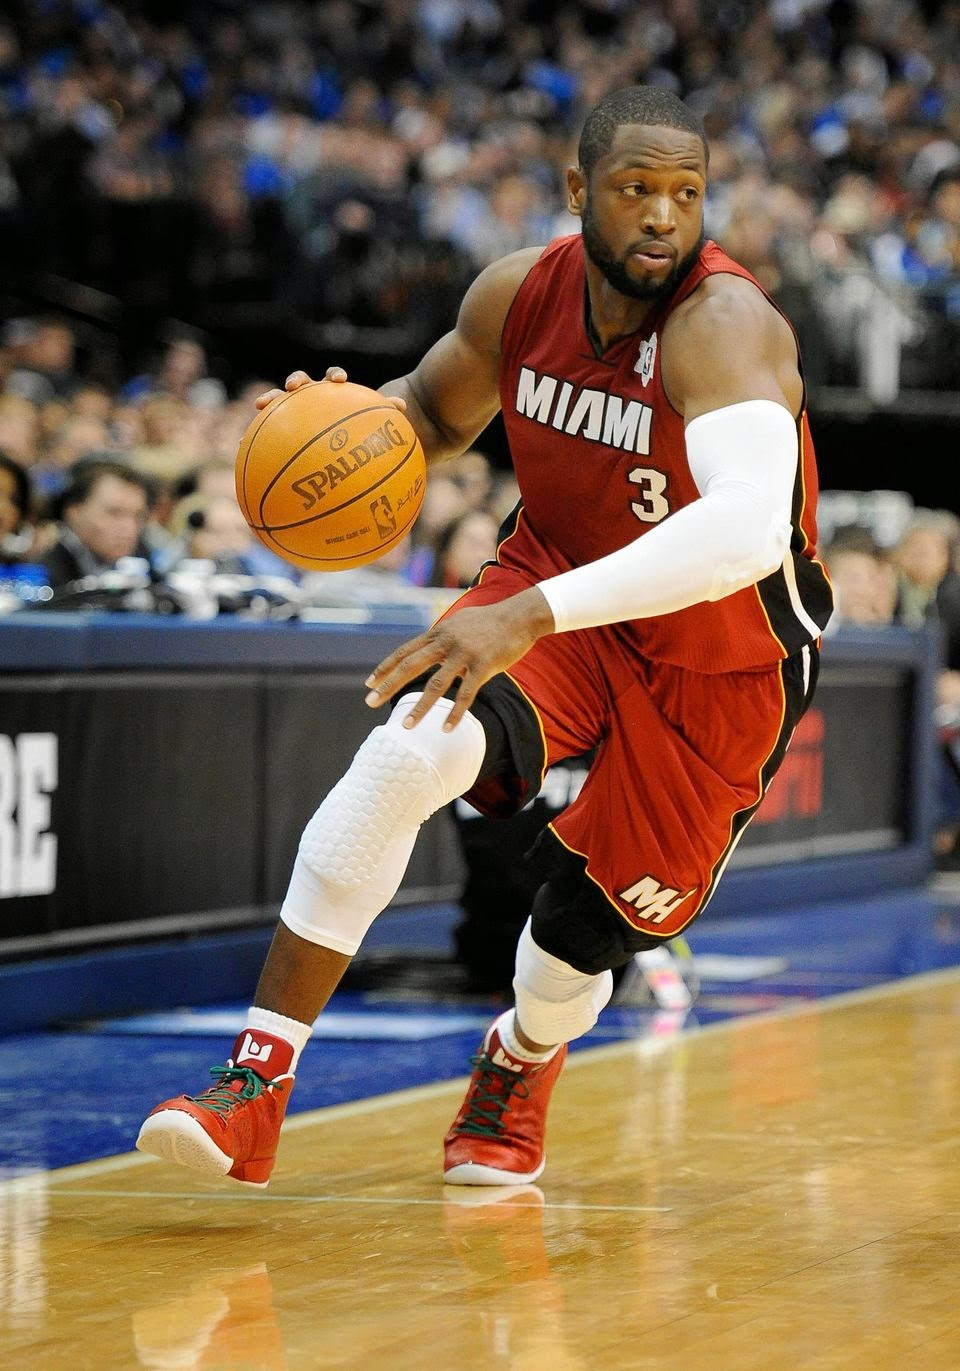 Dwyane Wade Out Of Action with Hamstring Injury